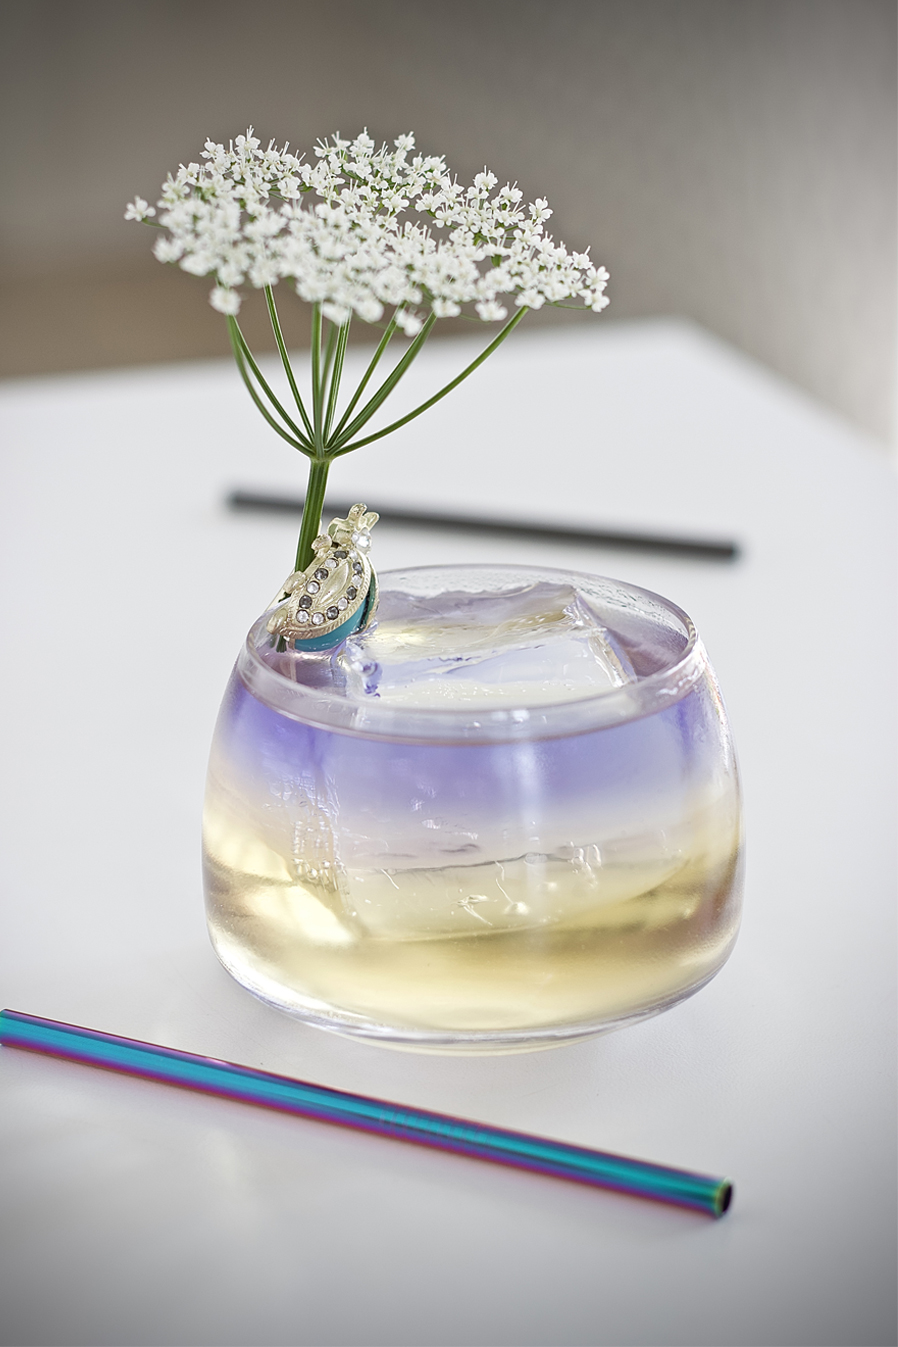 Jewel of the Garden - a classic cocktail to keep a cool head3 cl Illusionist Dry Gin (to float)3 cl Elderflower Liqueur3 cl Chardonnay Grape Juice1 Dash Peppermint Bitters1 Dash Cardamom BittersTop with Tonic WaterGarnish - Elderflower⠀